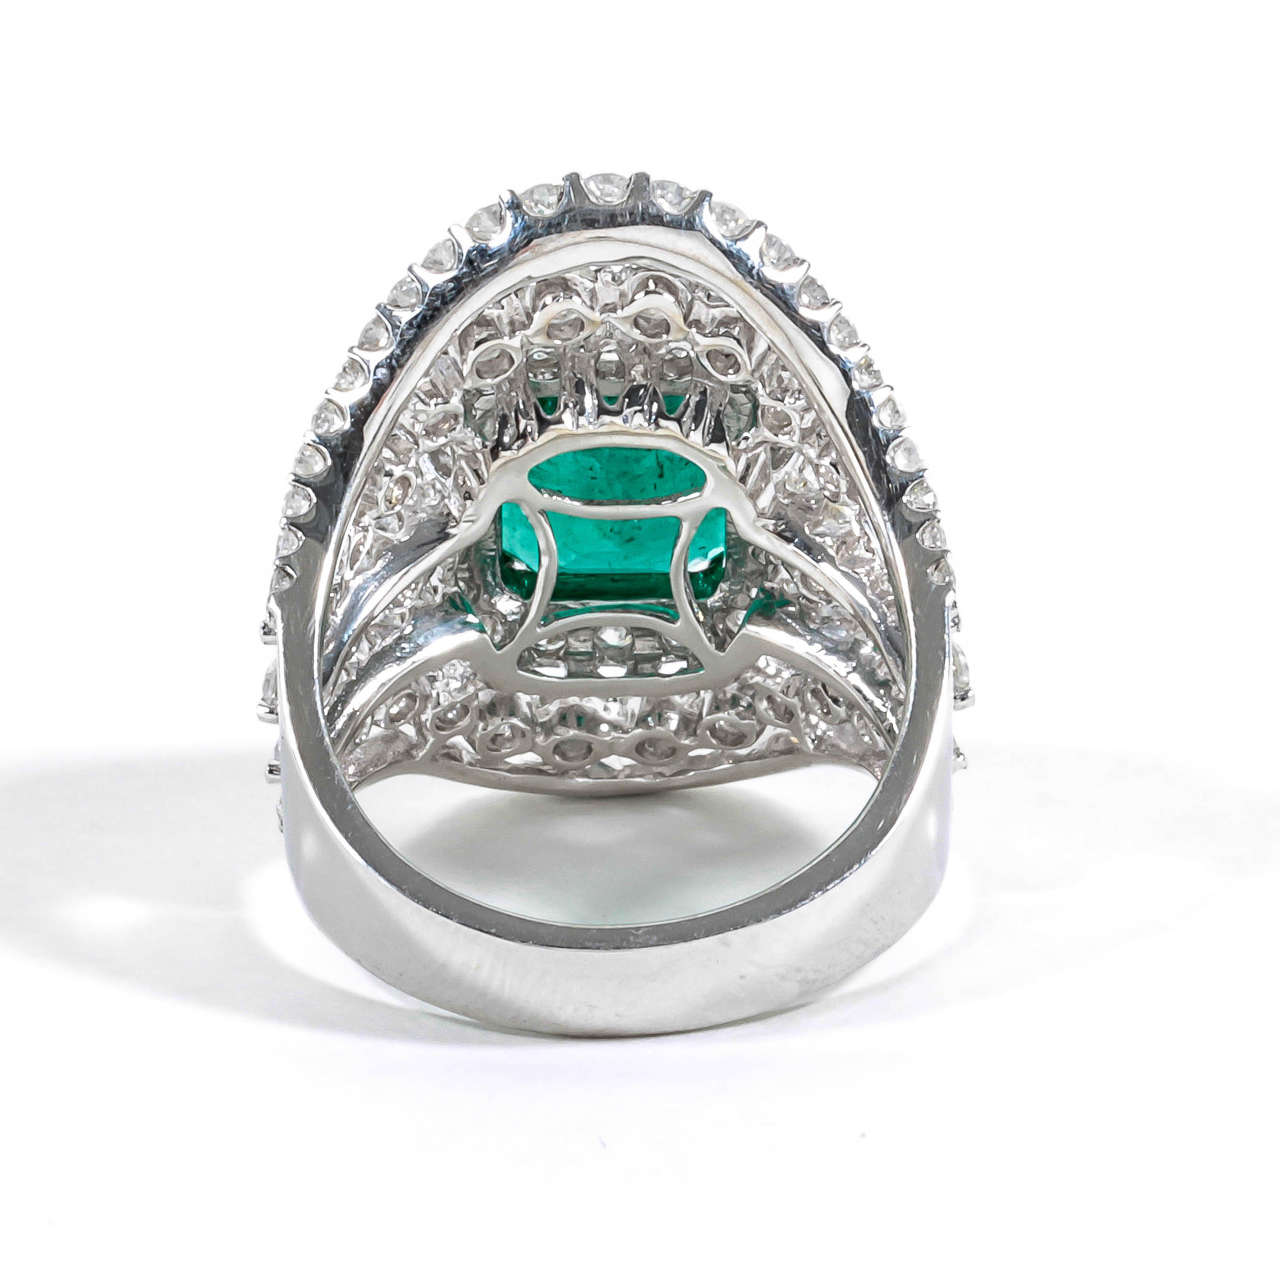 Unique Wide Emerald Diamond Gold Ring For Sale at 1stdibs